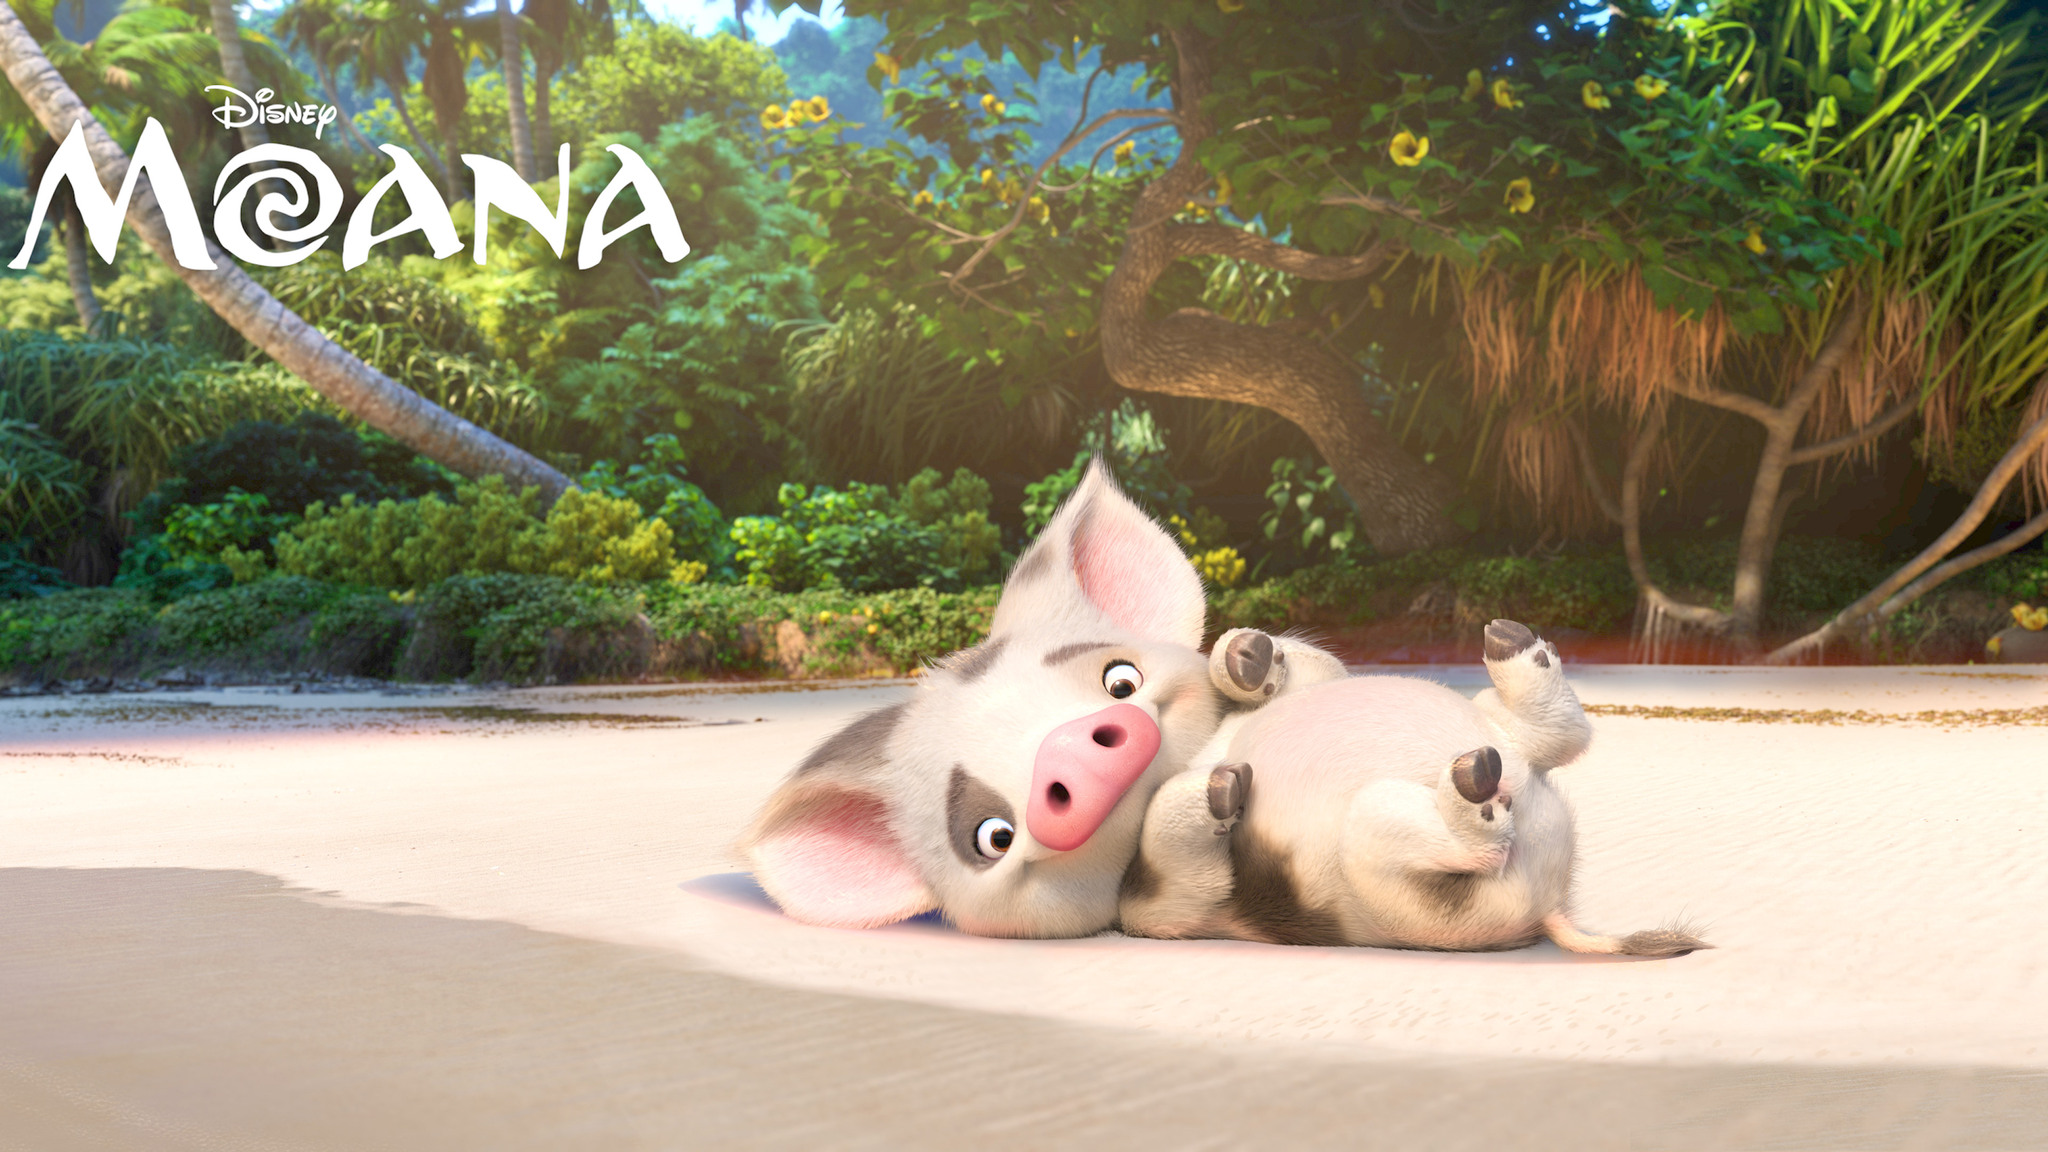 Cute Animated Wallpapers For Mobile 2048x1152 Pua Moana 4k 2048x1152 Resolution Hd 4k